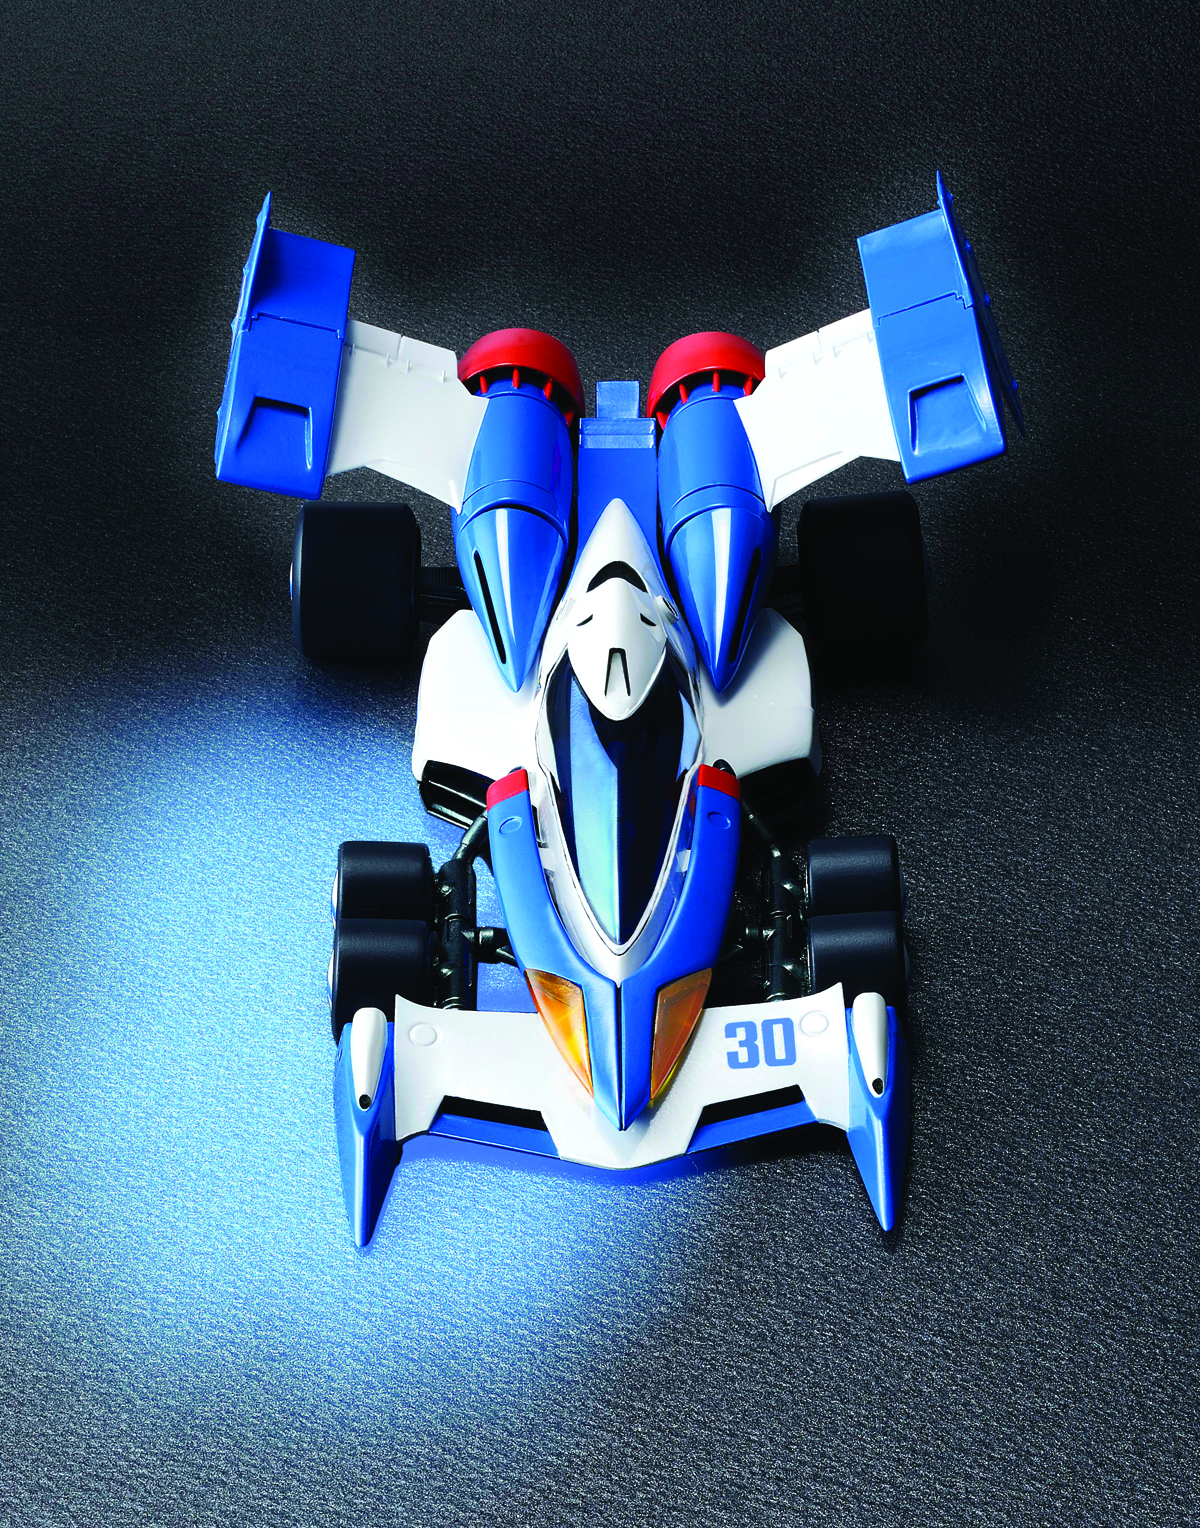 FUTURE GPX CYBER FORMULA SUPER ASURADA 01 VAR ACT FIG